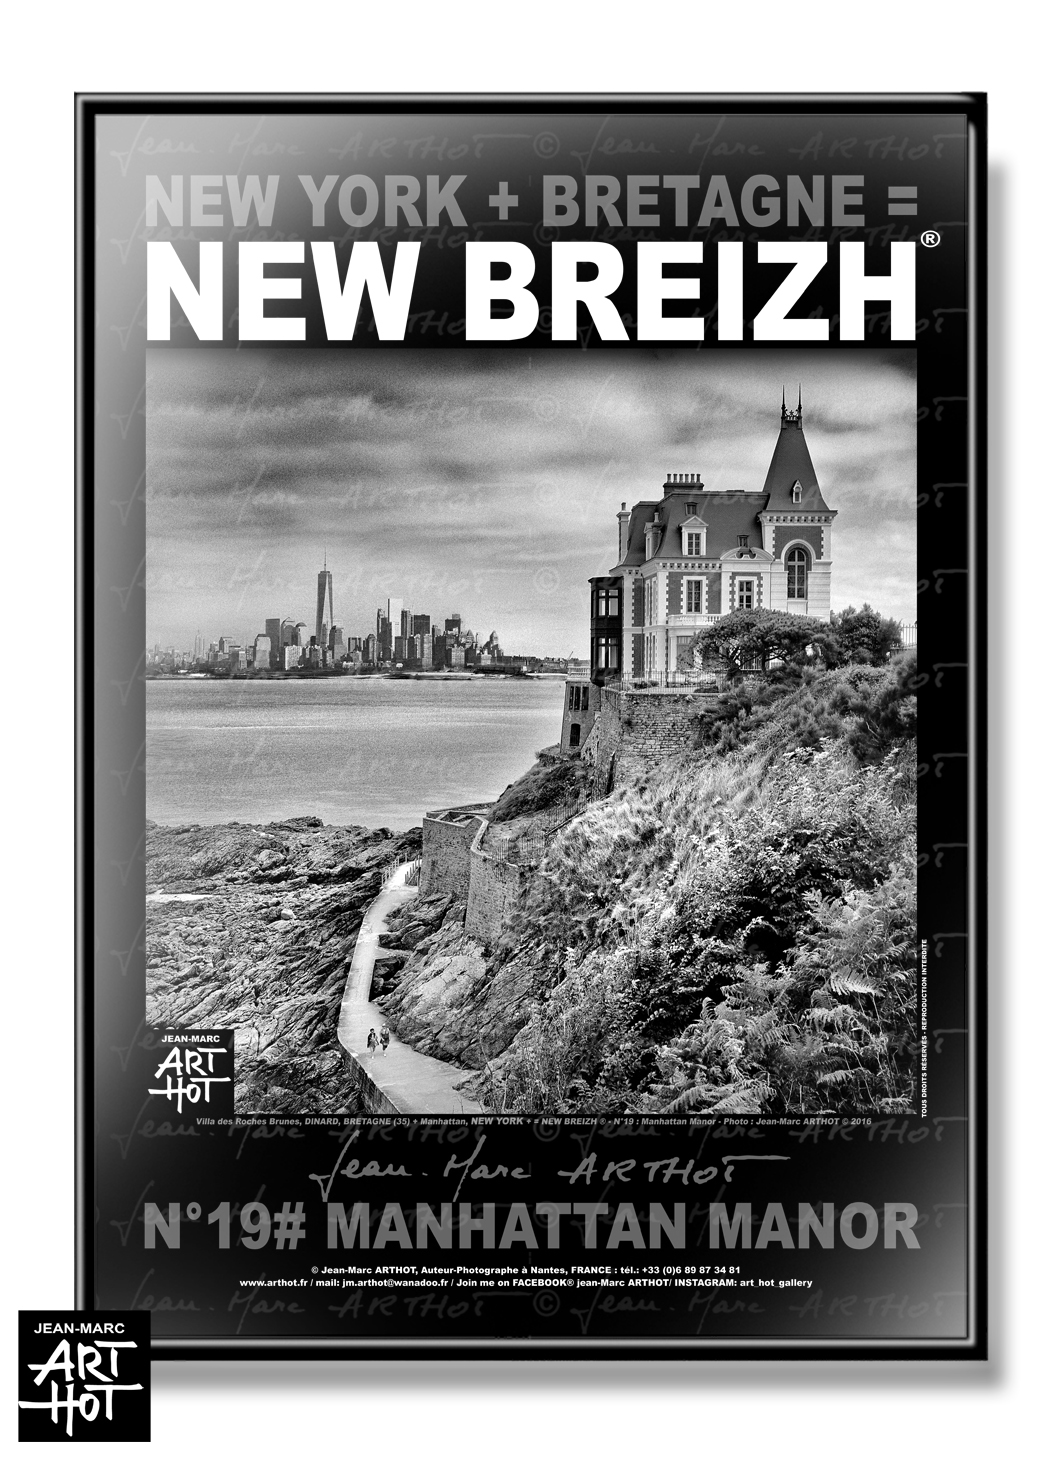 AFFICHE NEW BREIZH N°19-Manhattan Manor